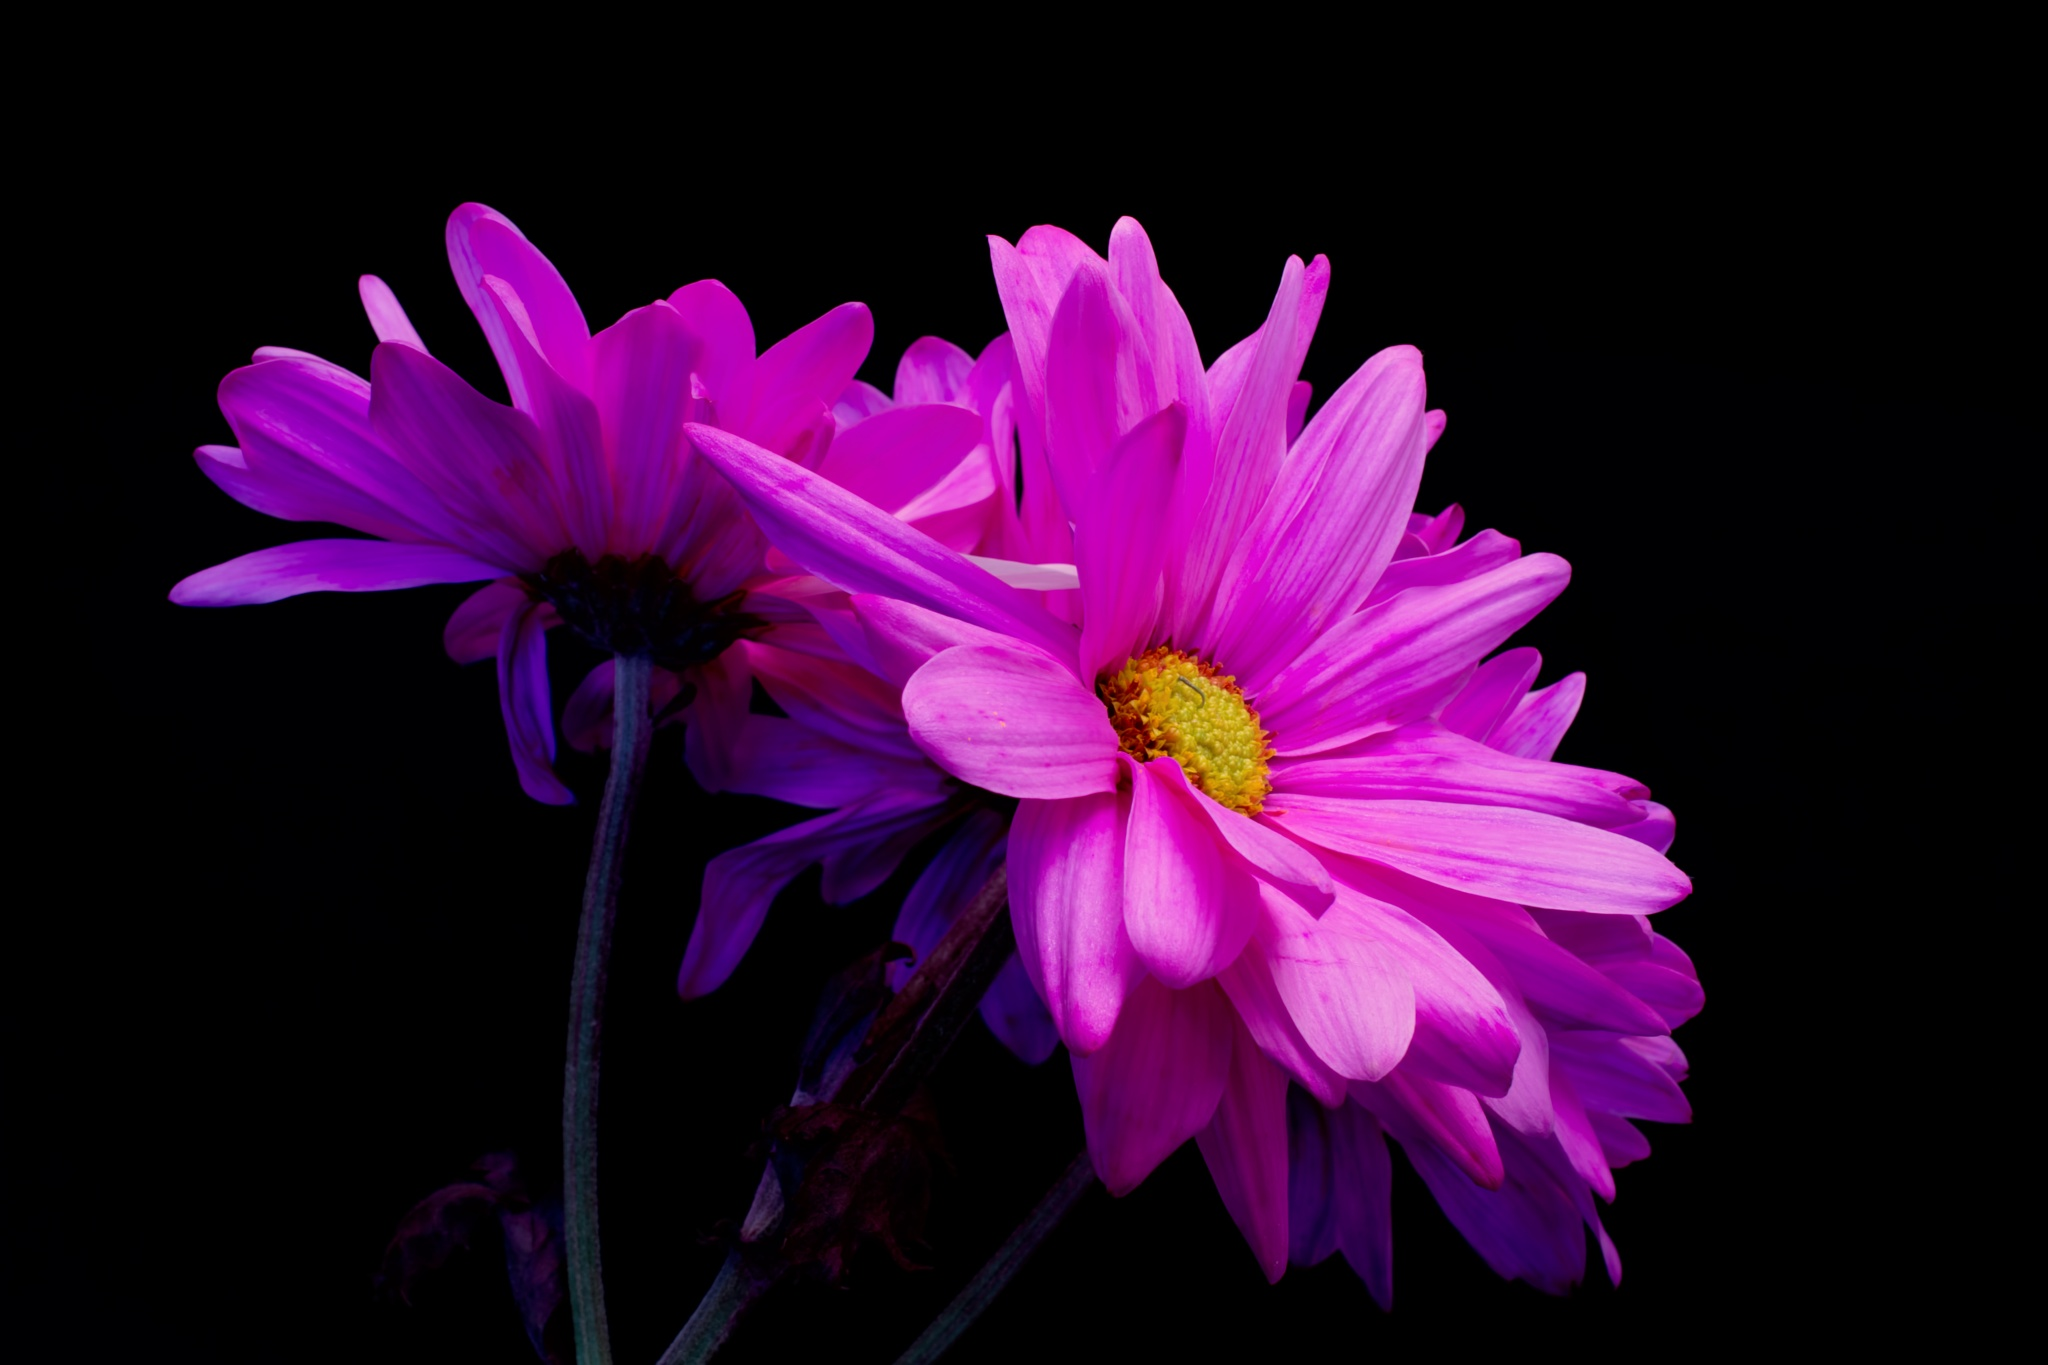 Deeply Pink 1217 by ThomasJerger